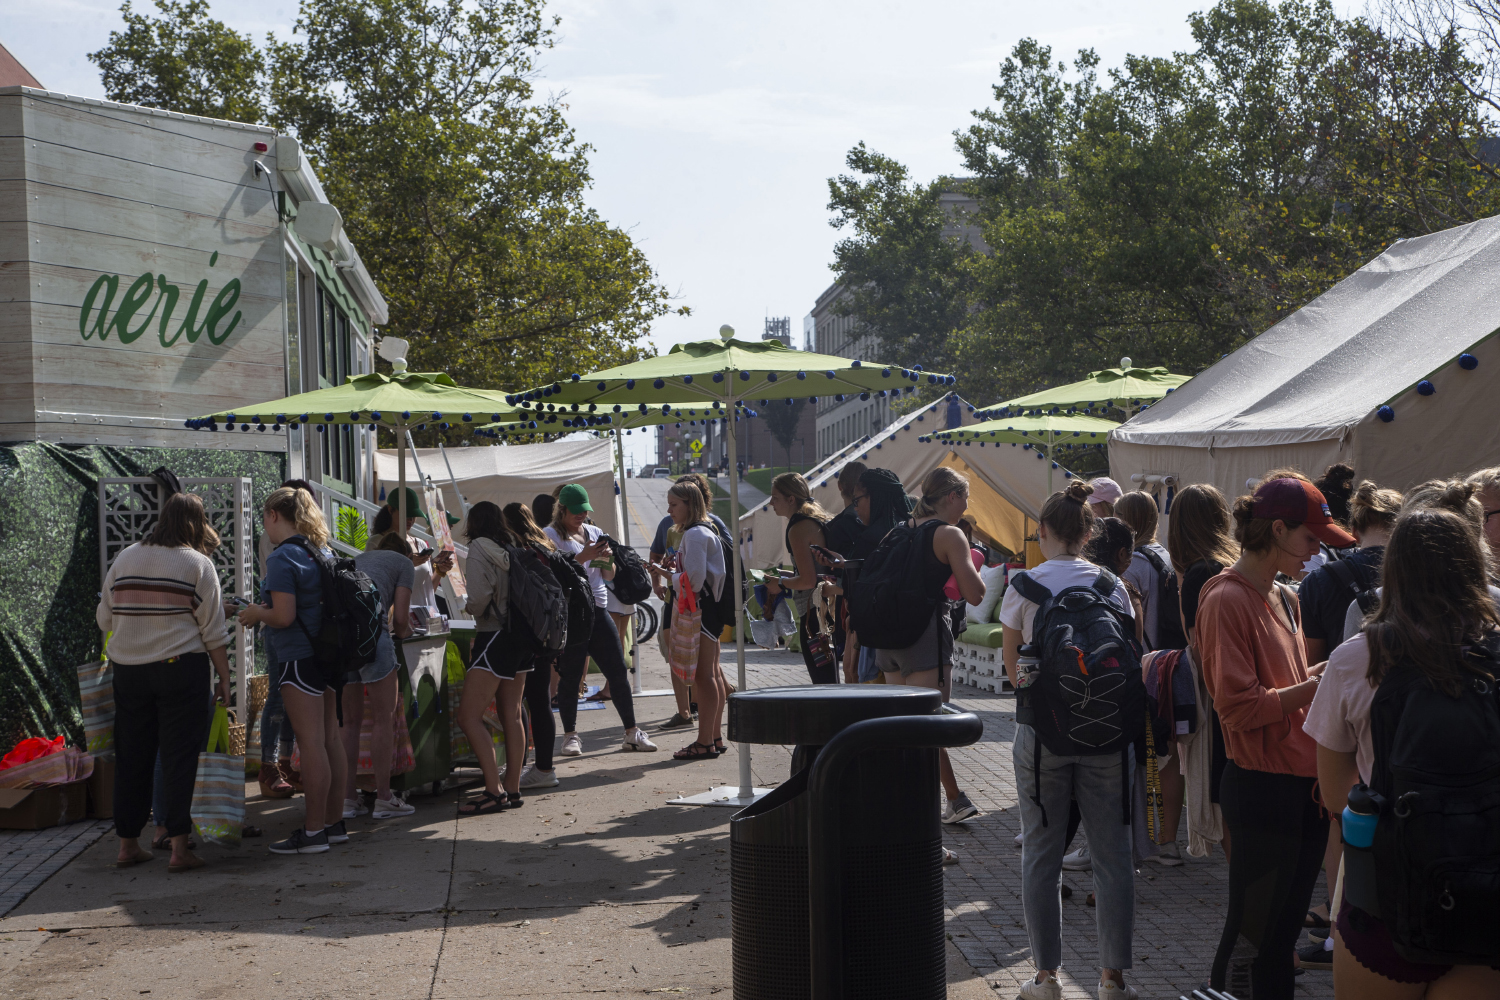 Students stand in line by the Aeirie tents outside of the Adler Journalism building on Thursday, Sept. 12, 2019. Aeirie is a sub-brand of American Eagle. (Katie Goodale/The Daily Iowan)